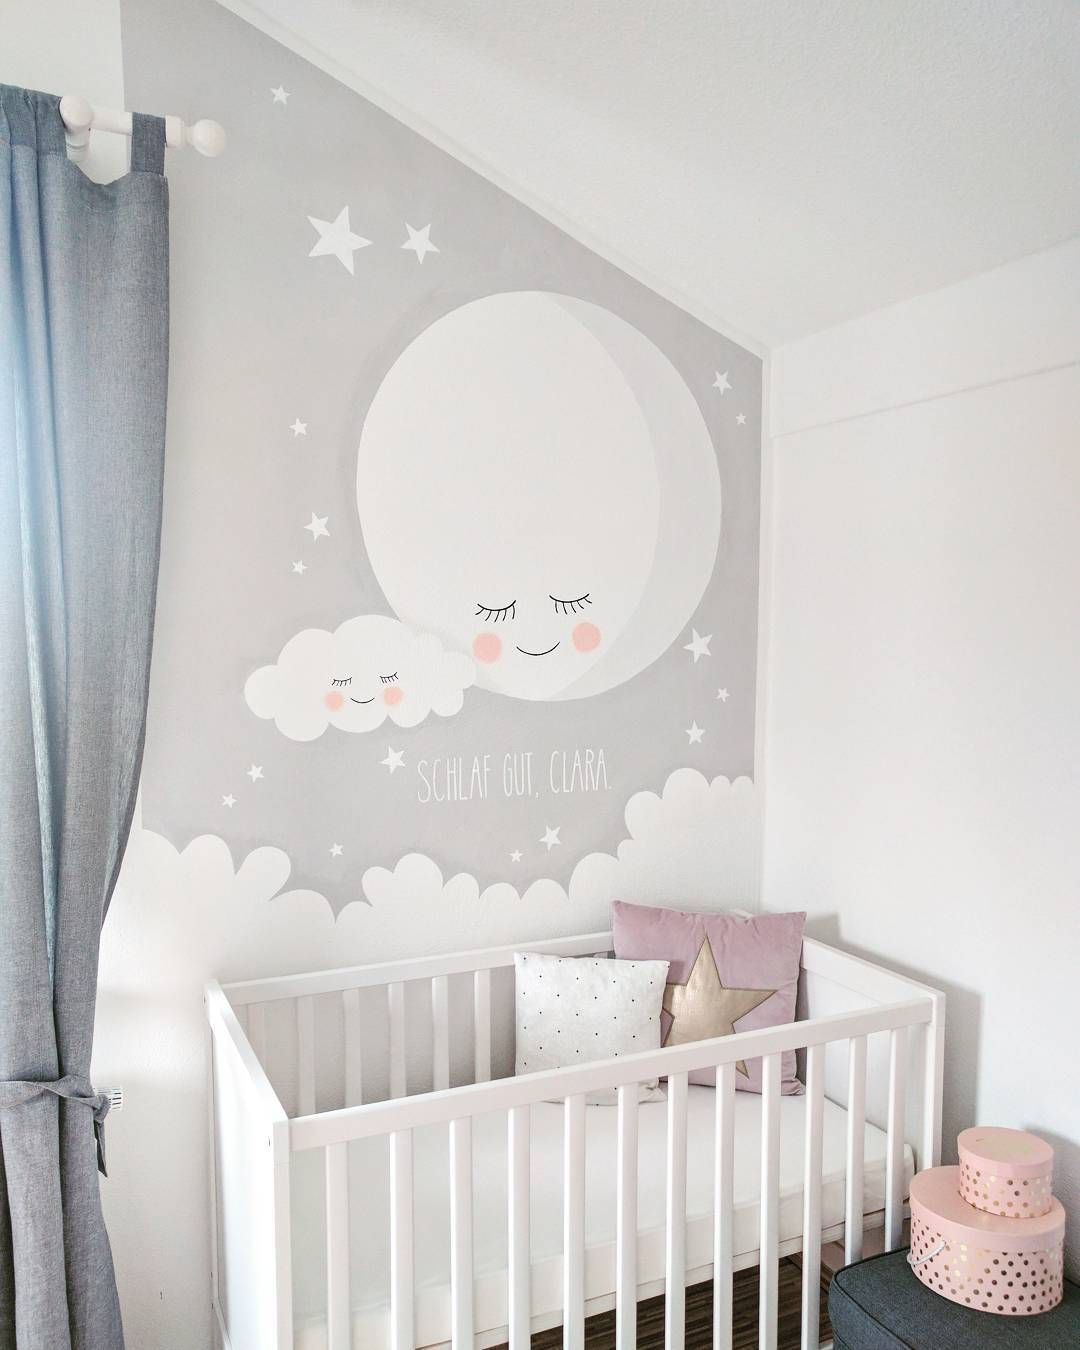 27 Cute Baby Room Ideas Nursery Decor For Boy Girl And Unisex Cozy Baby Room Baby Girl Room Baby Room